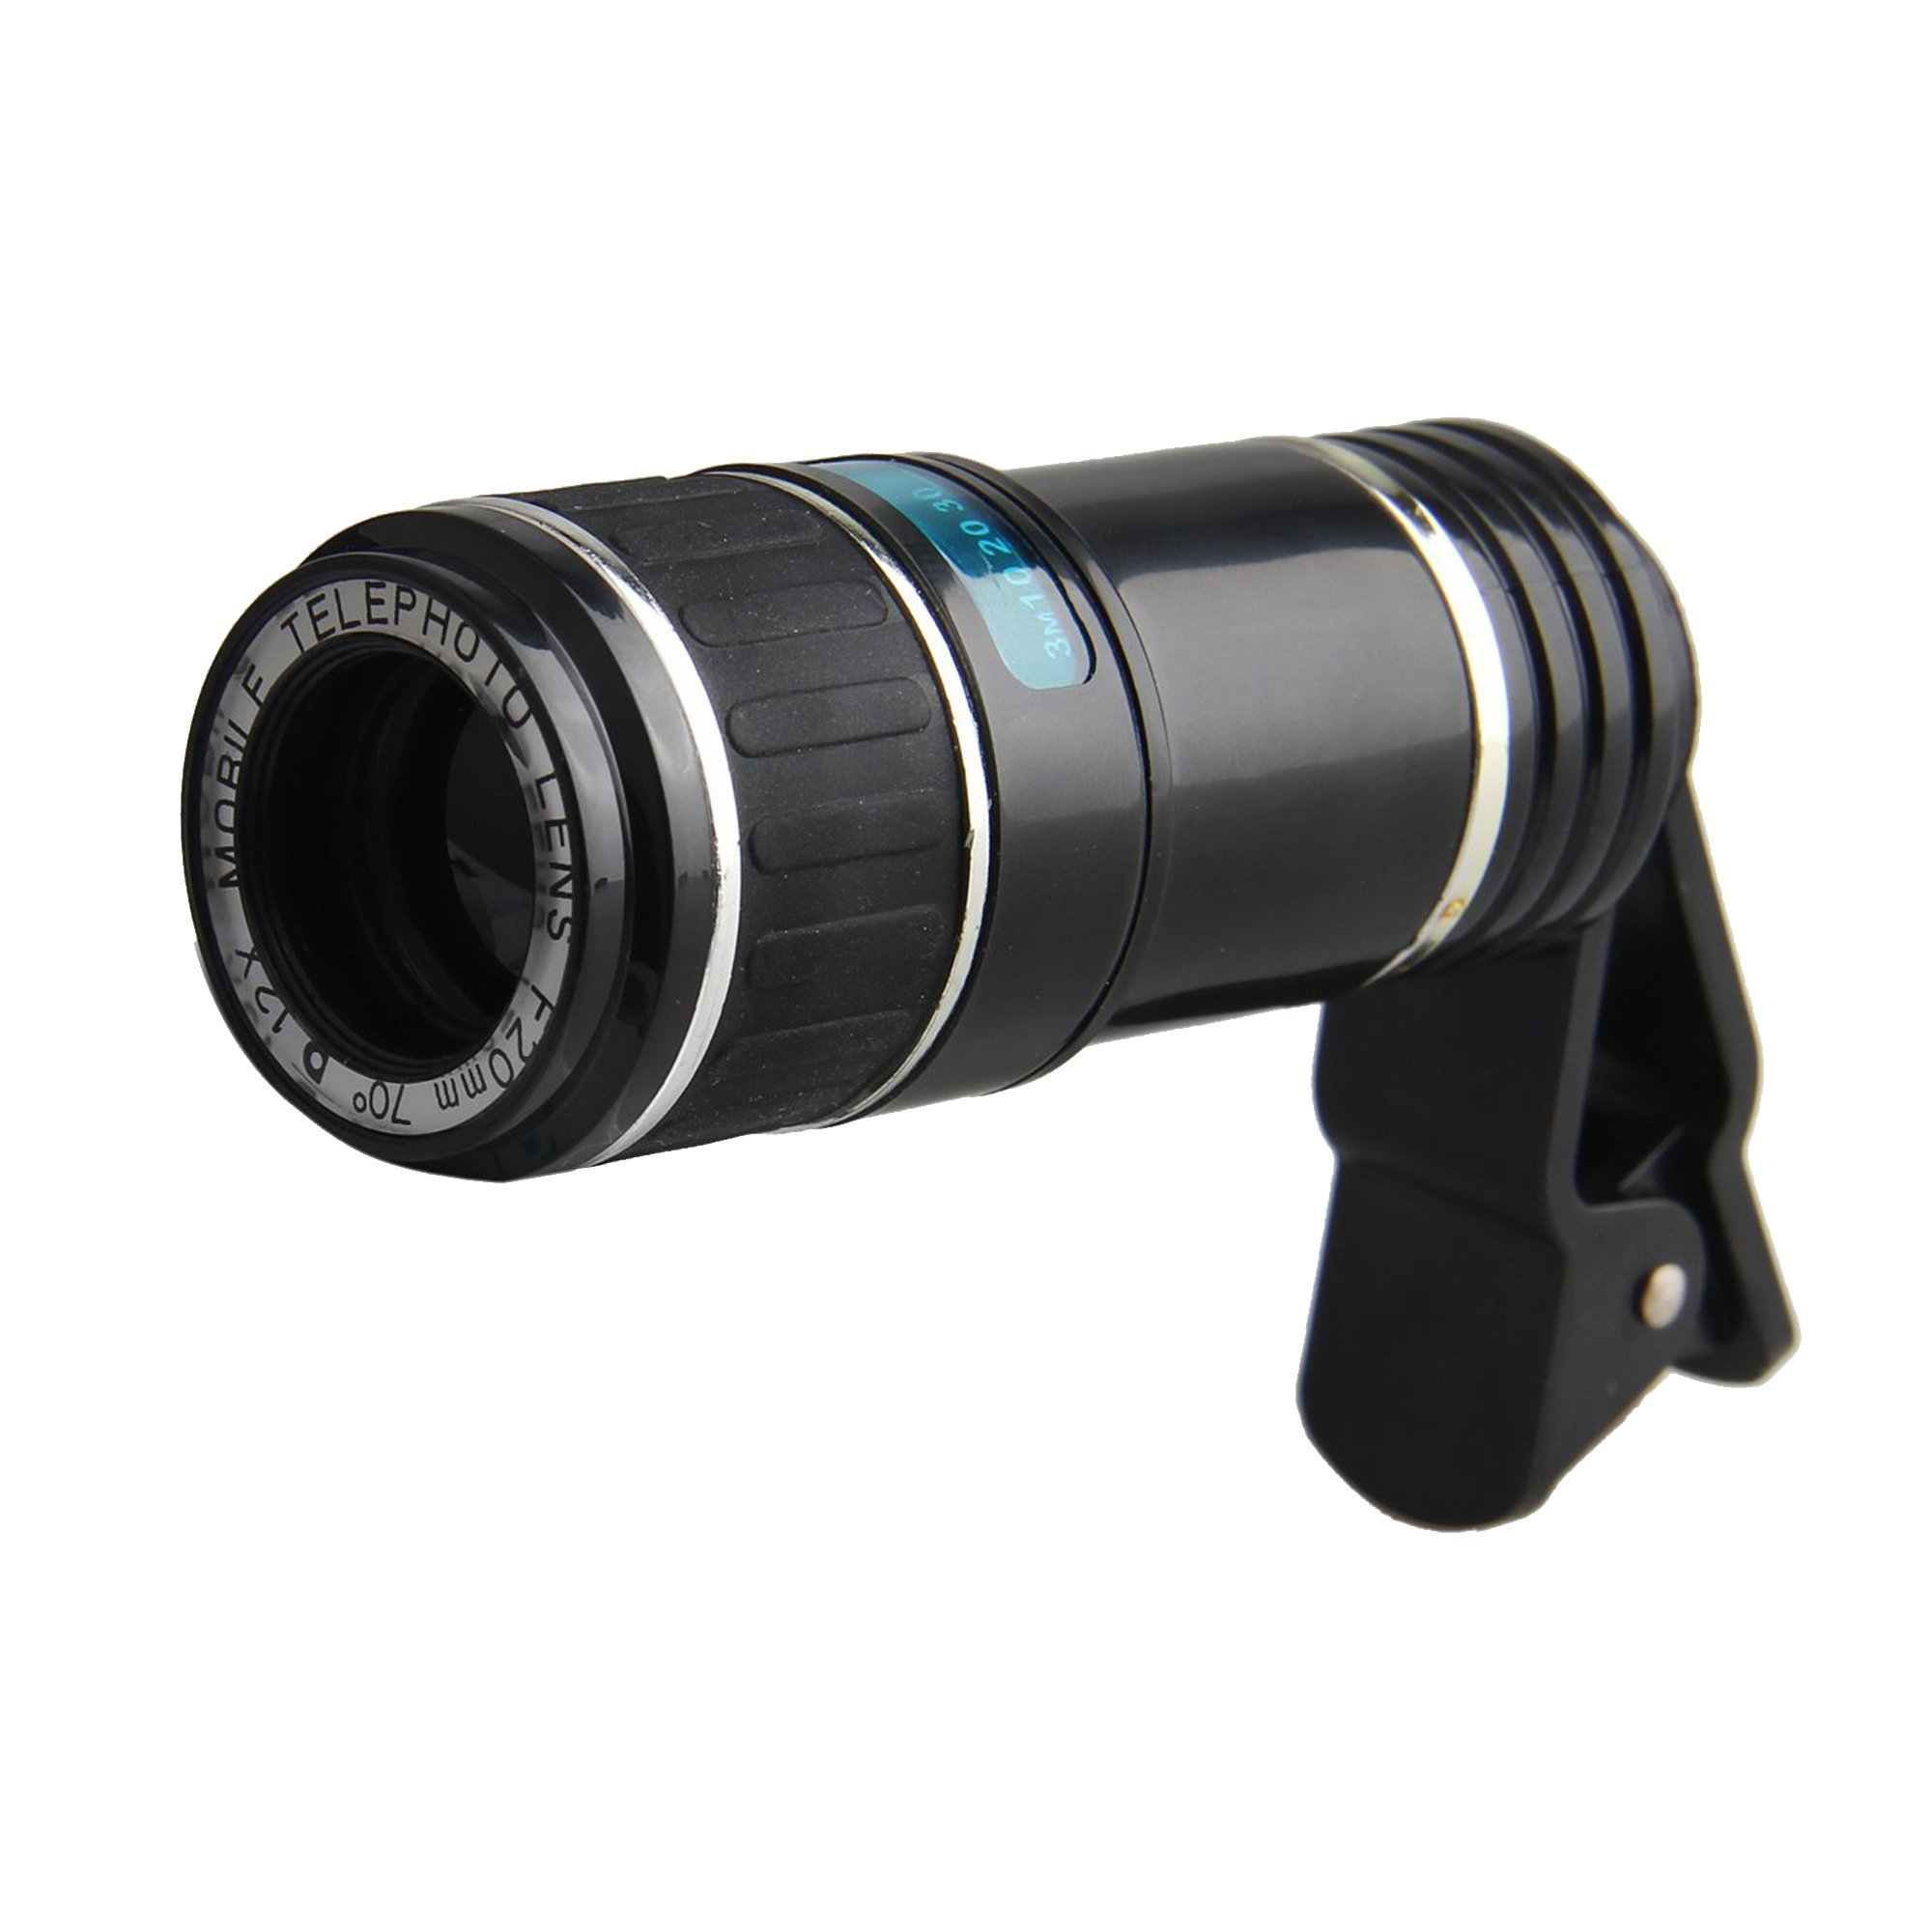 Ultra High Definition 12X Clip-on Telephoto Camera Lens Manual Focus Zoom Lens for iPhone, Android/Windows Smartphones